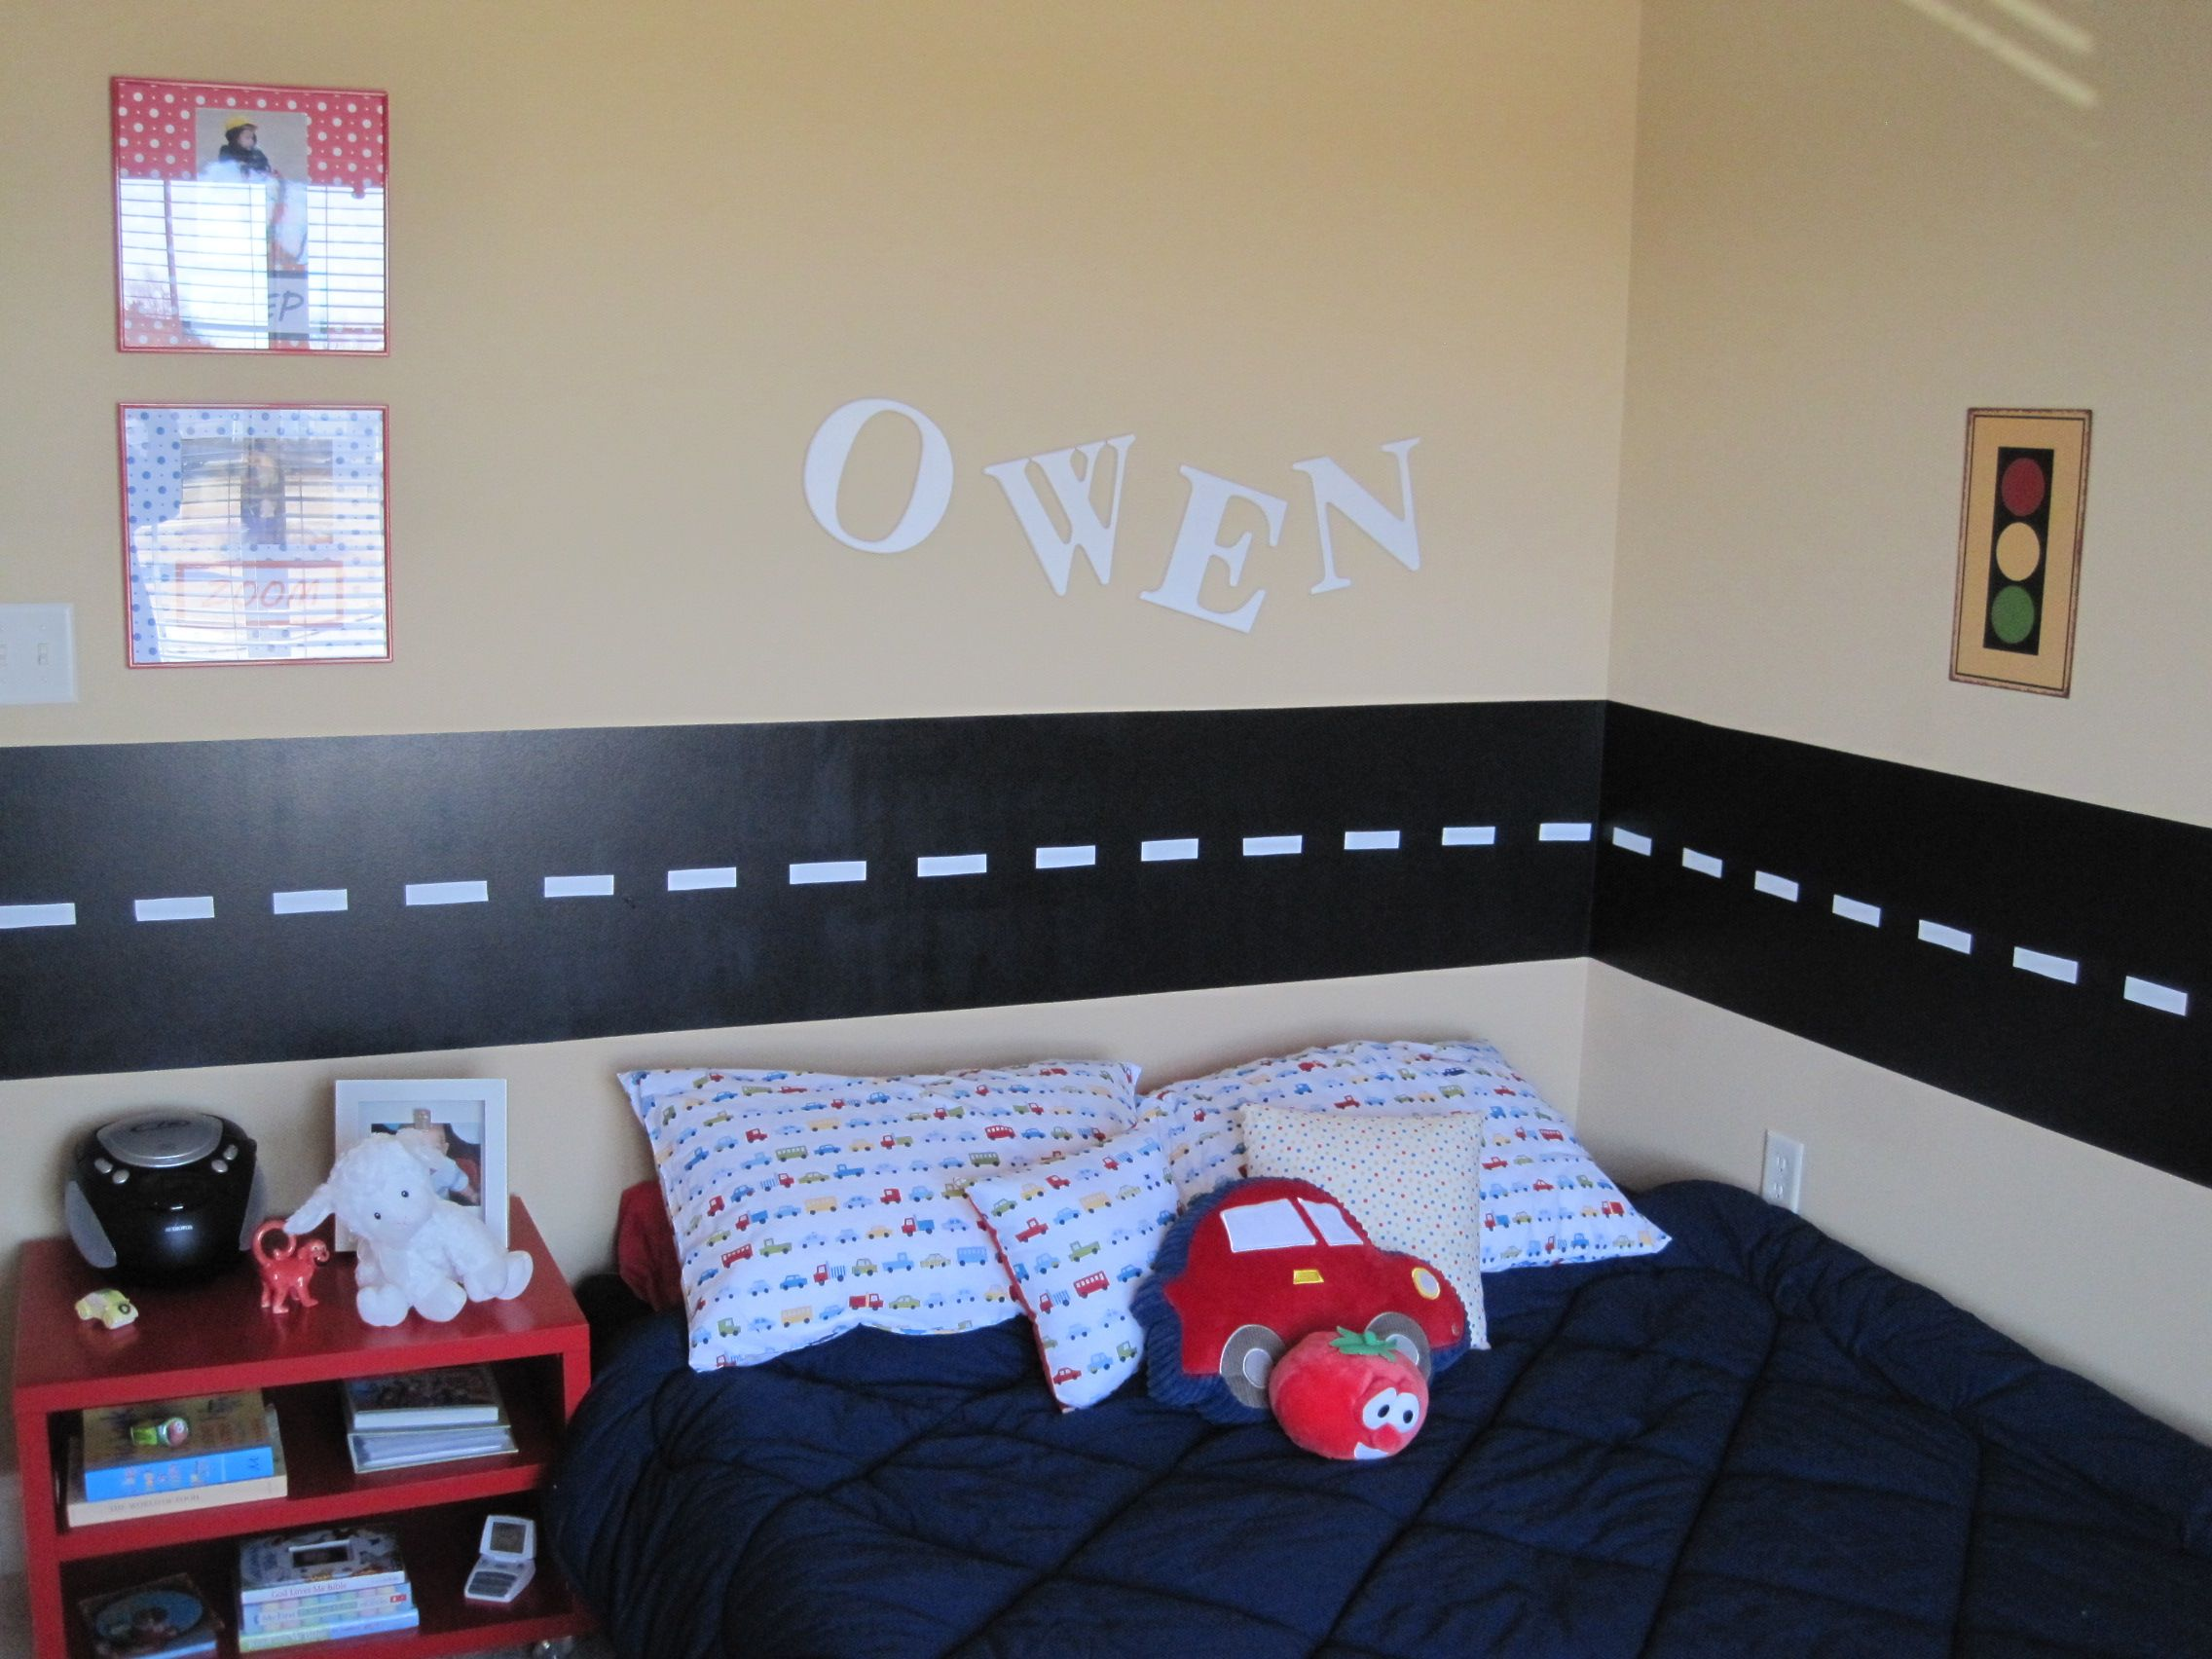 Next Childrens Bedroom Accessories 17 Best Ideas About Race Car Bed On Pinterest Car Bed Cars